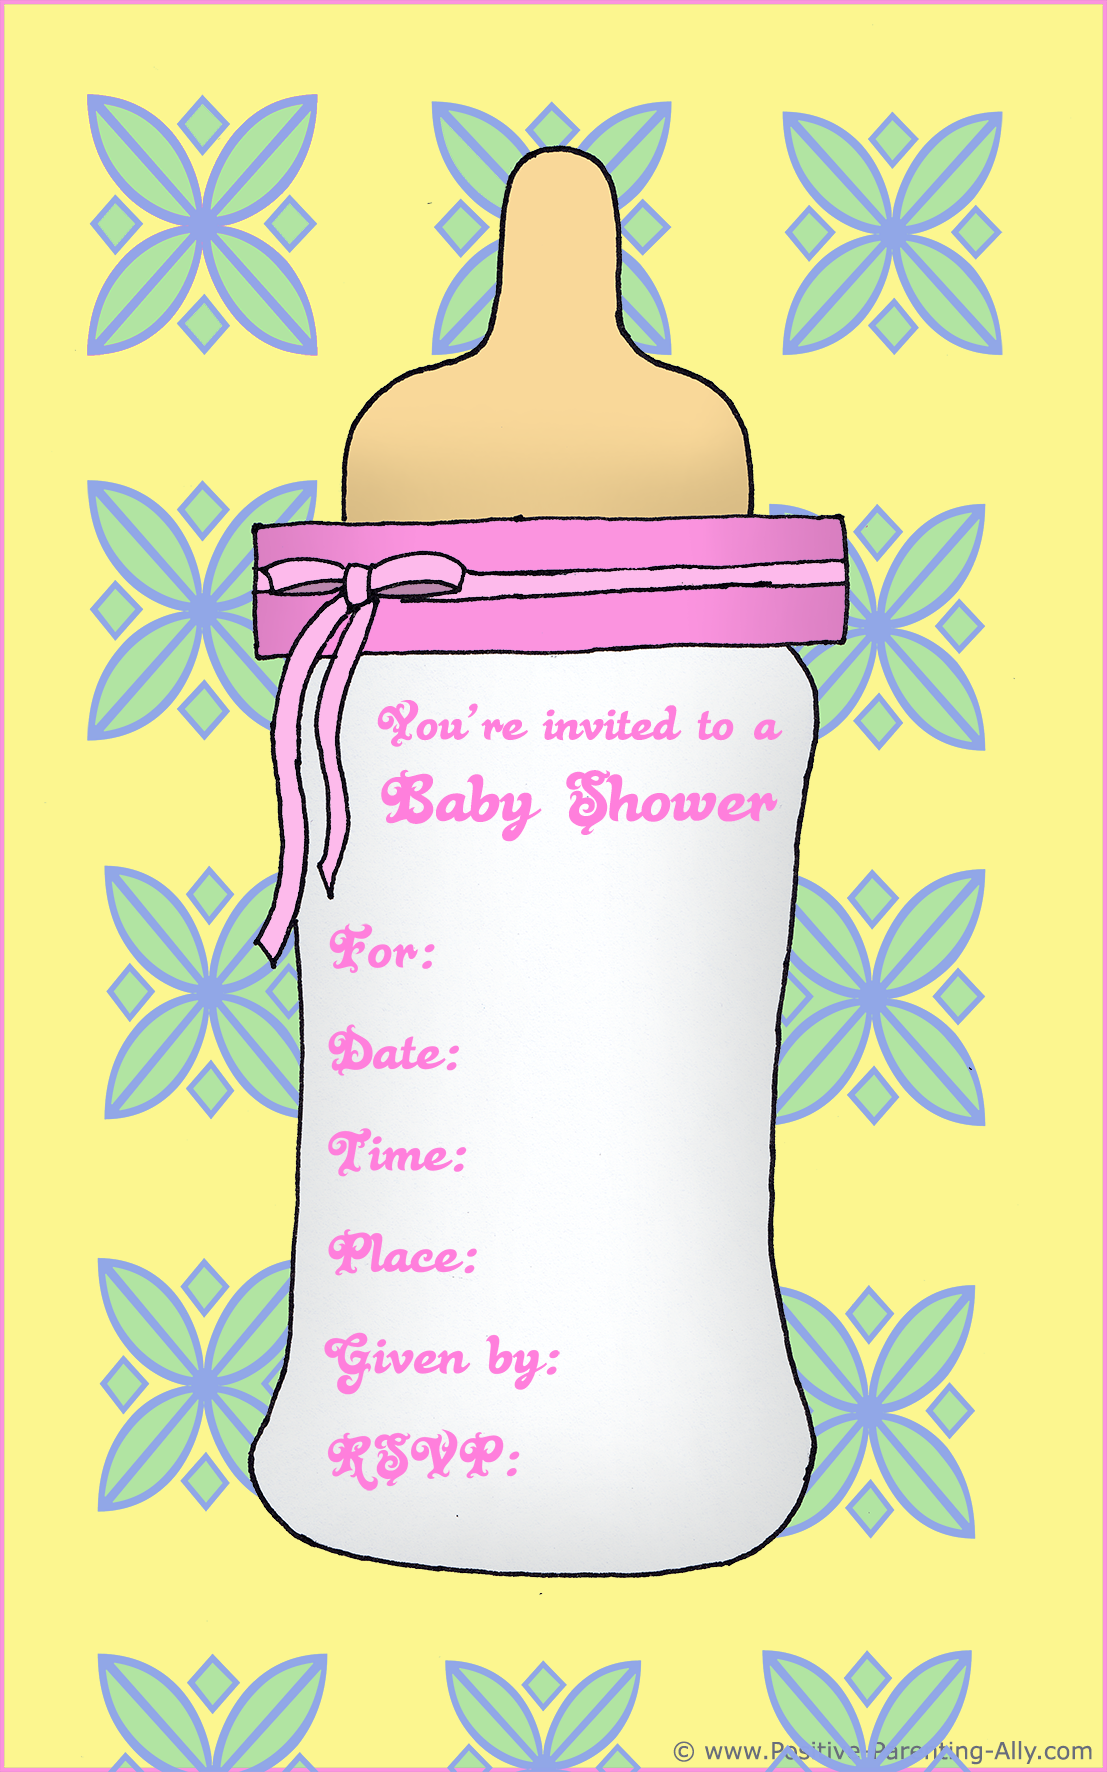 Printable baby shower invitation for girls - pink bottle.